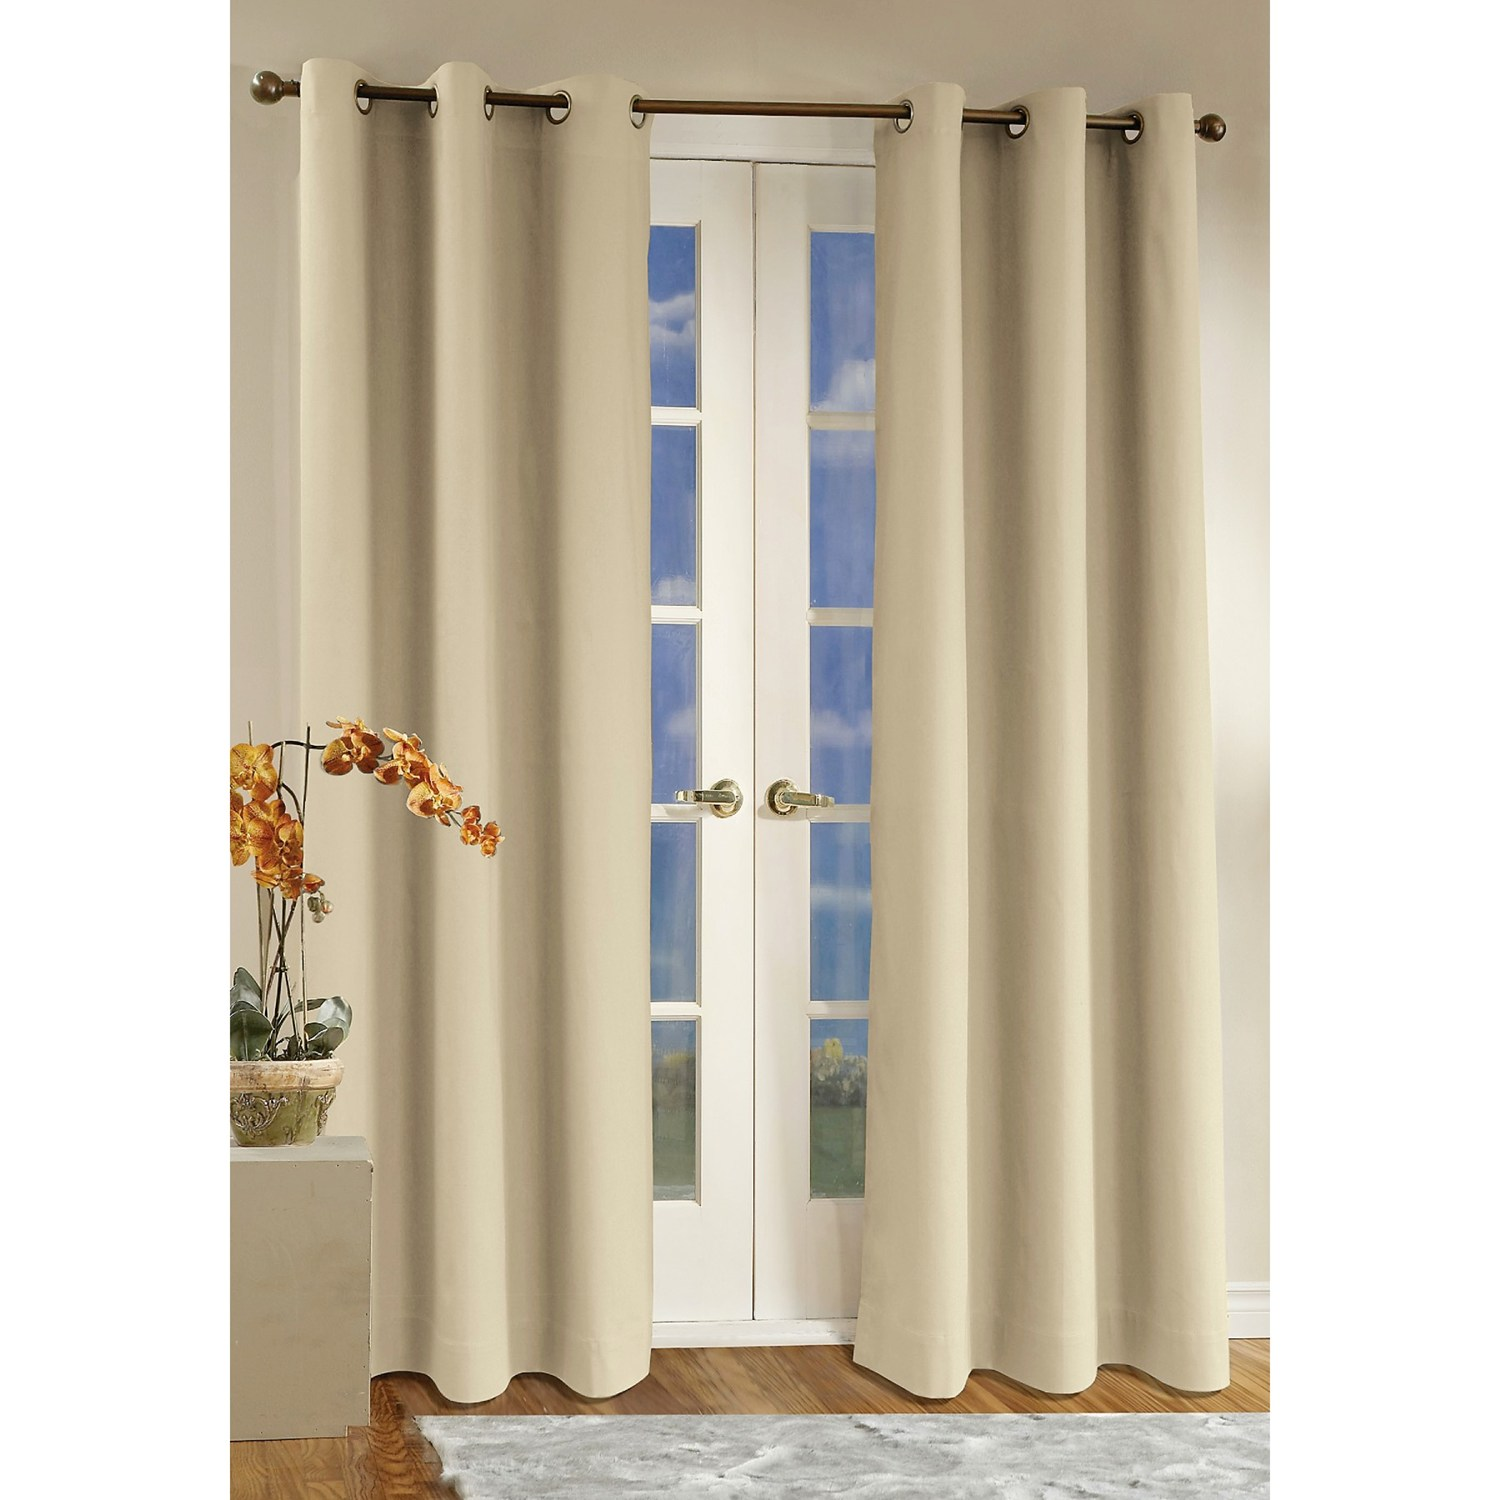 Curtain Ideas For Sliding Glass Door: Patio Door Curtain Ideas